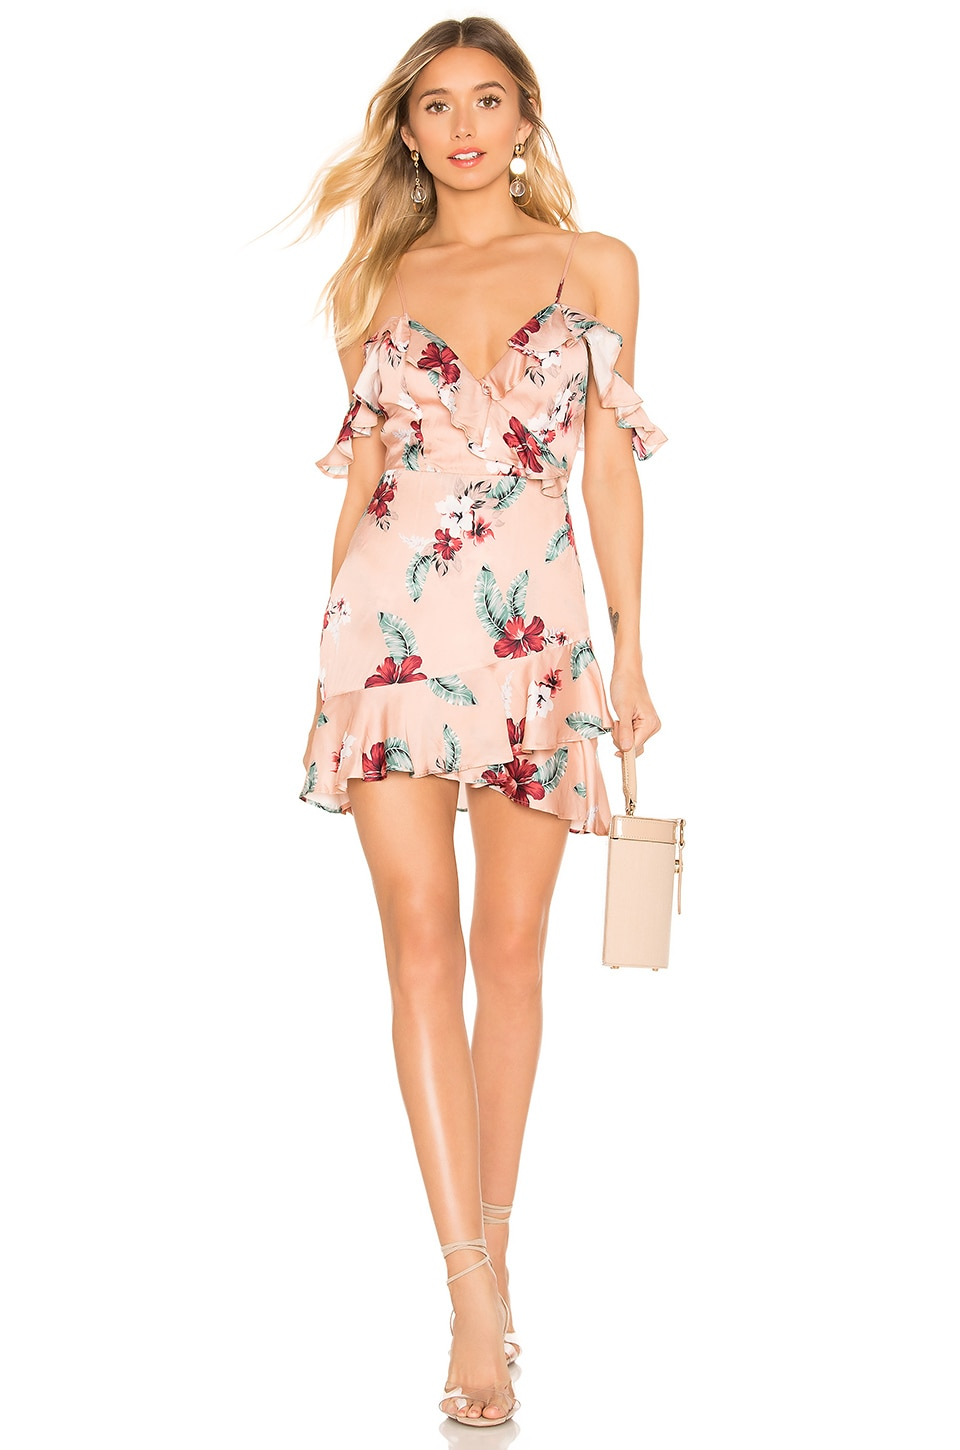 MAJORELLE Salsa Dress in Pink Tropical